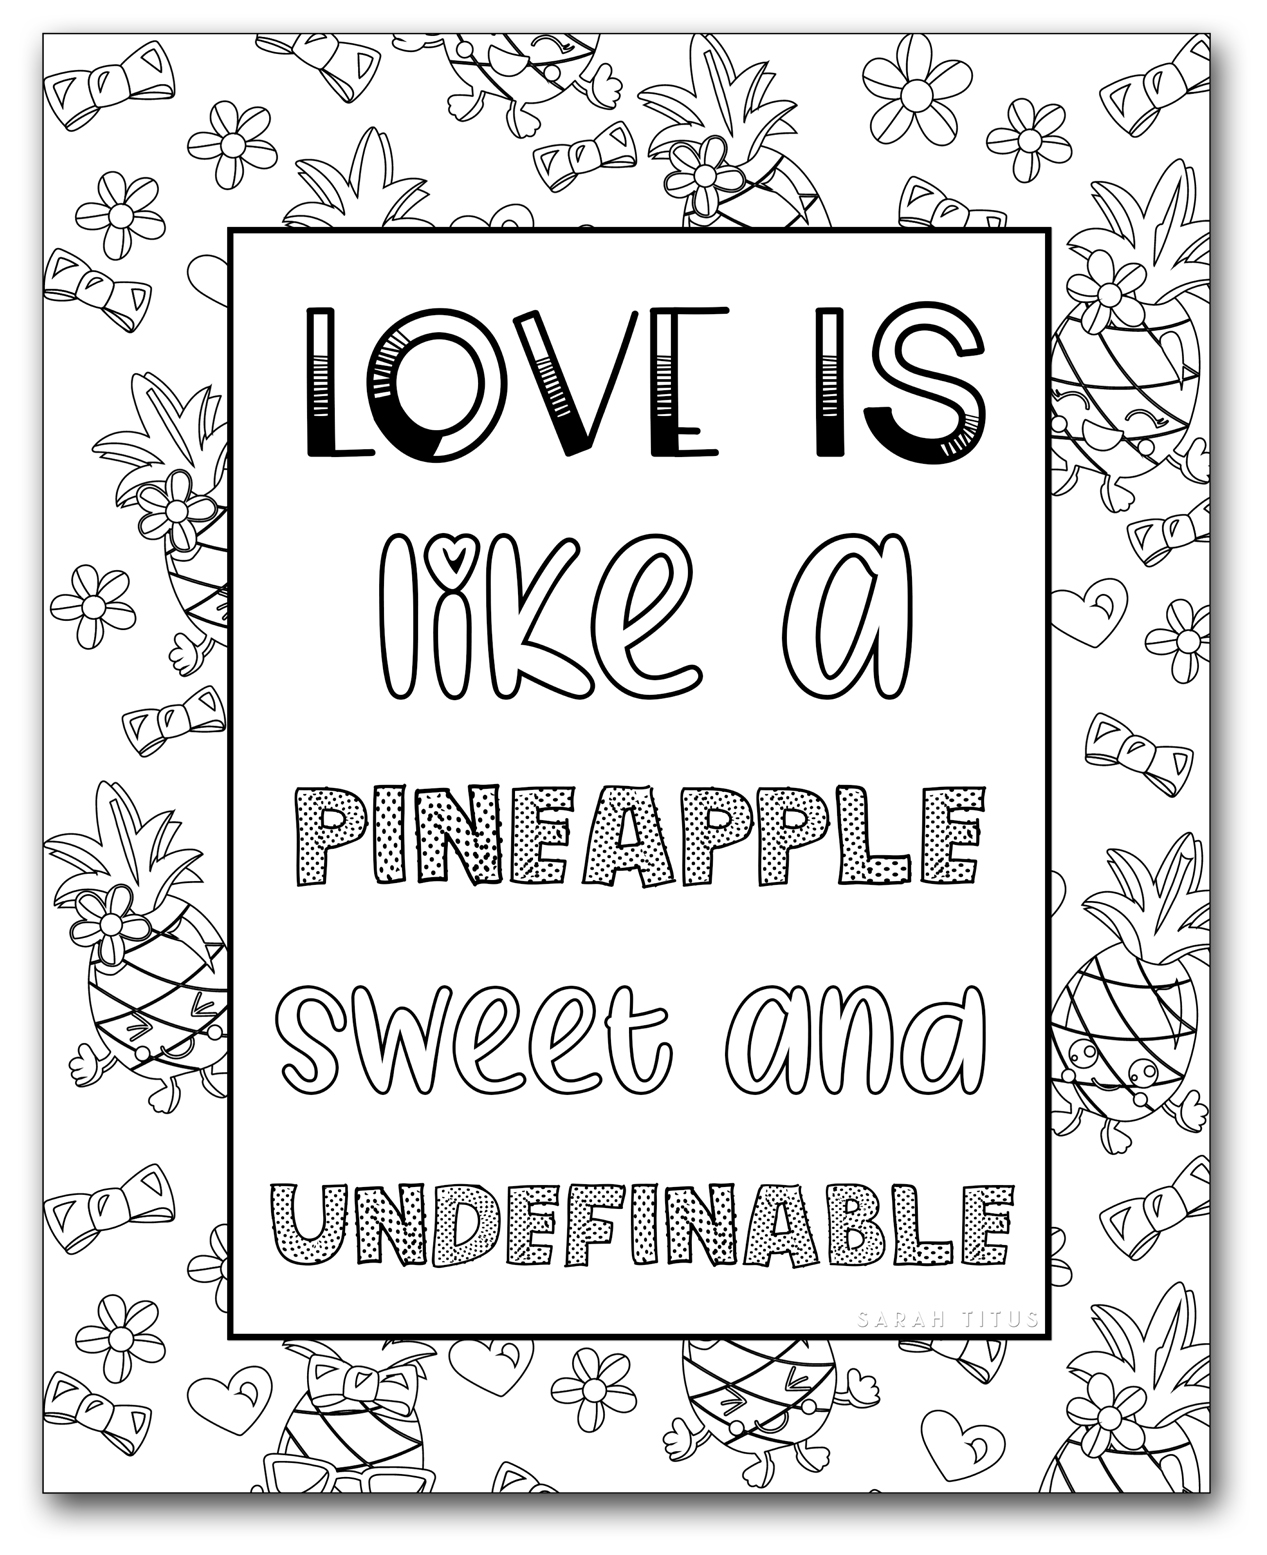 Printable Coloring Pages for Girls - Sarah Titus